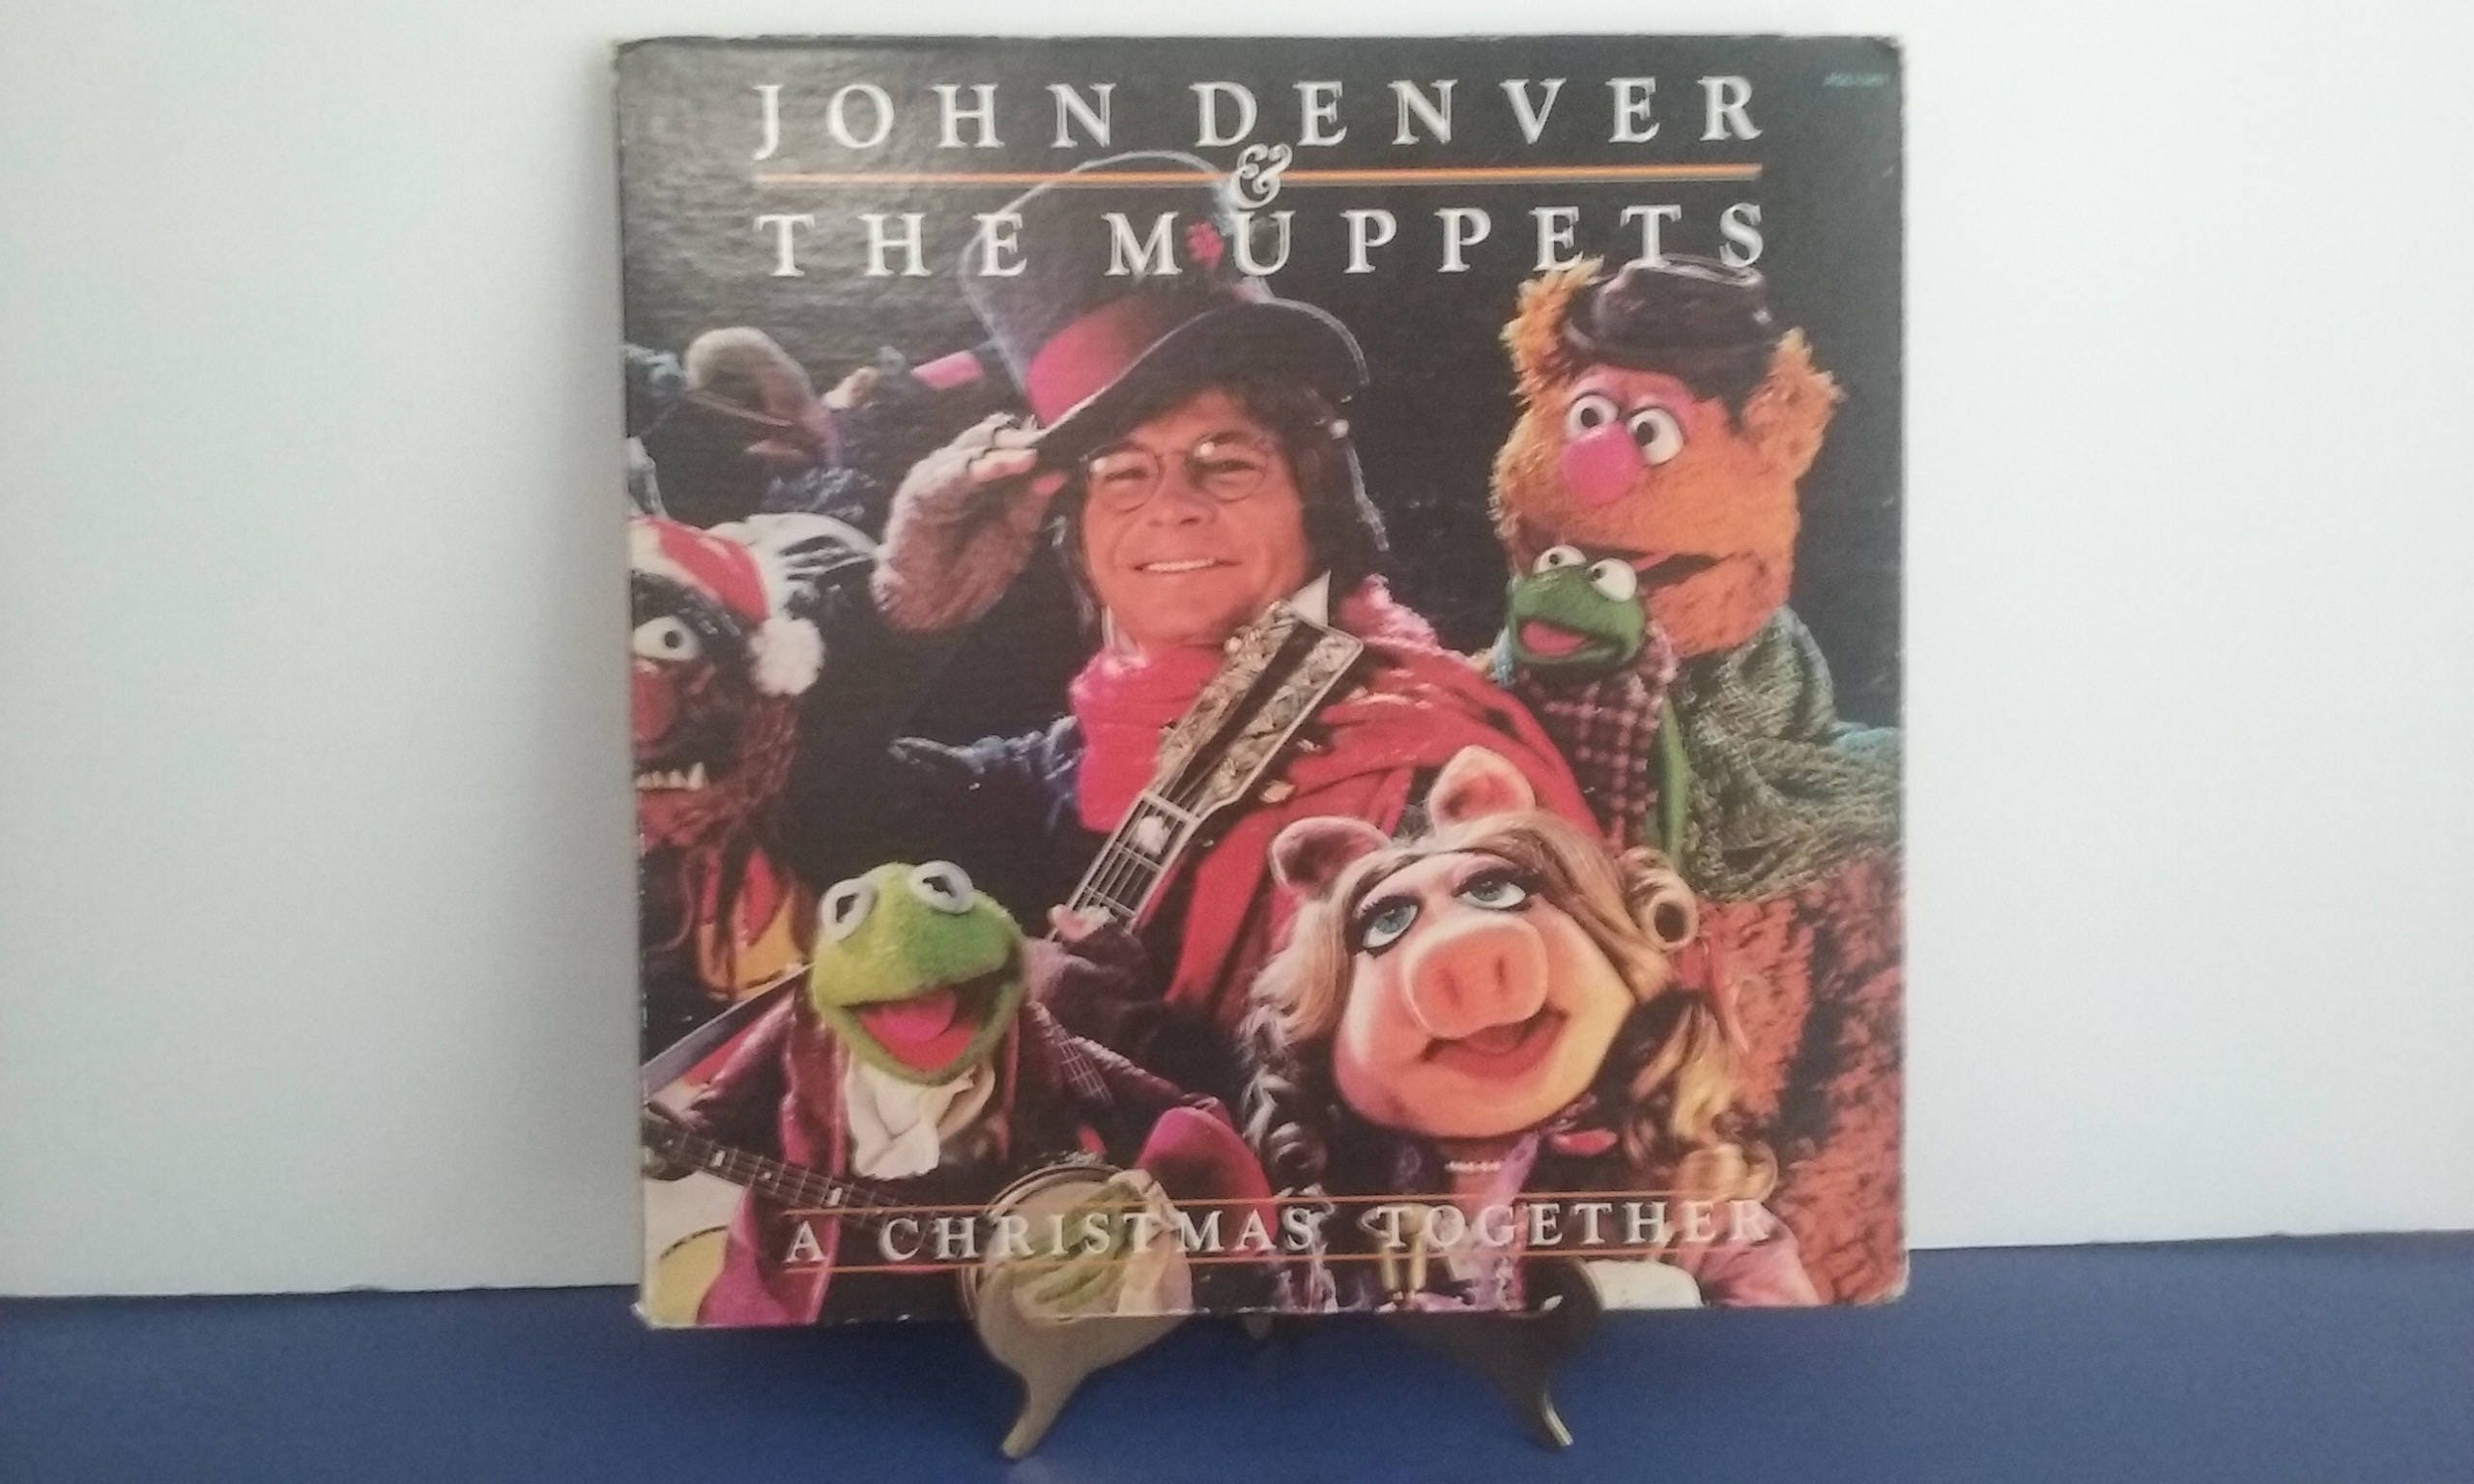 John Denver & The Muppets A Christmas Together Circa 1979 | Etsy